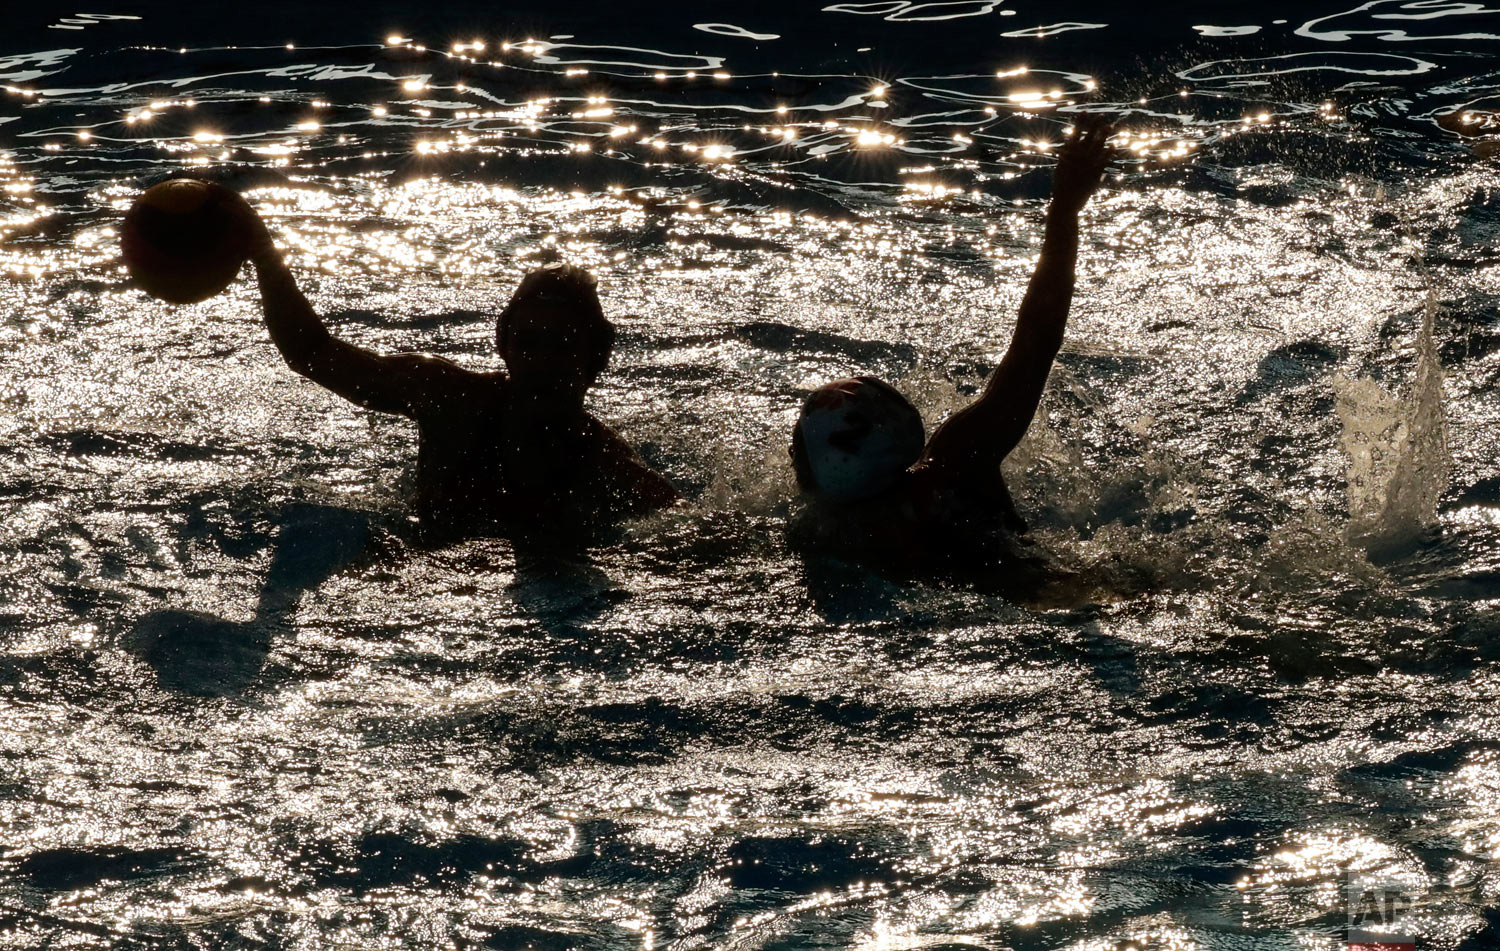 China and Hong Kong players in action during their women's water polo game at the 18th Asian Games in Jakarta, Indonesia, Tuesday, Aug. 21, 2018. (AP Photo/Lee Jin-man)